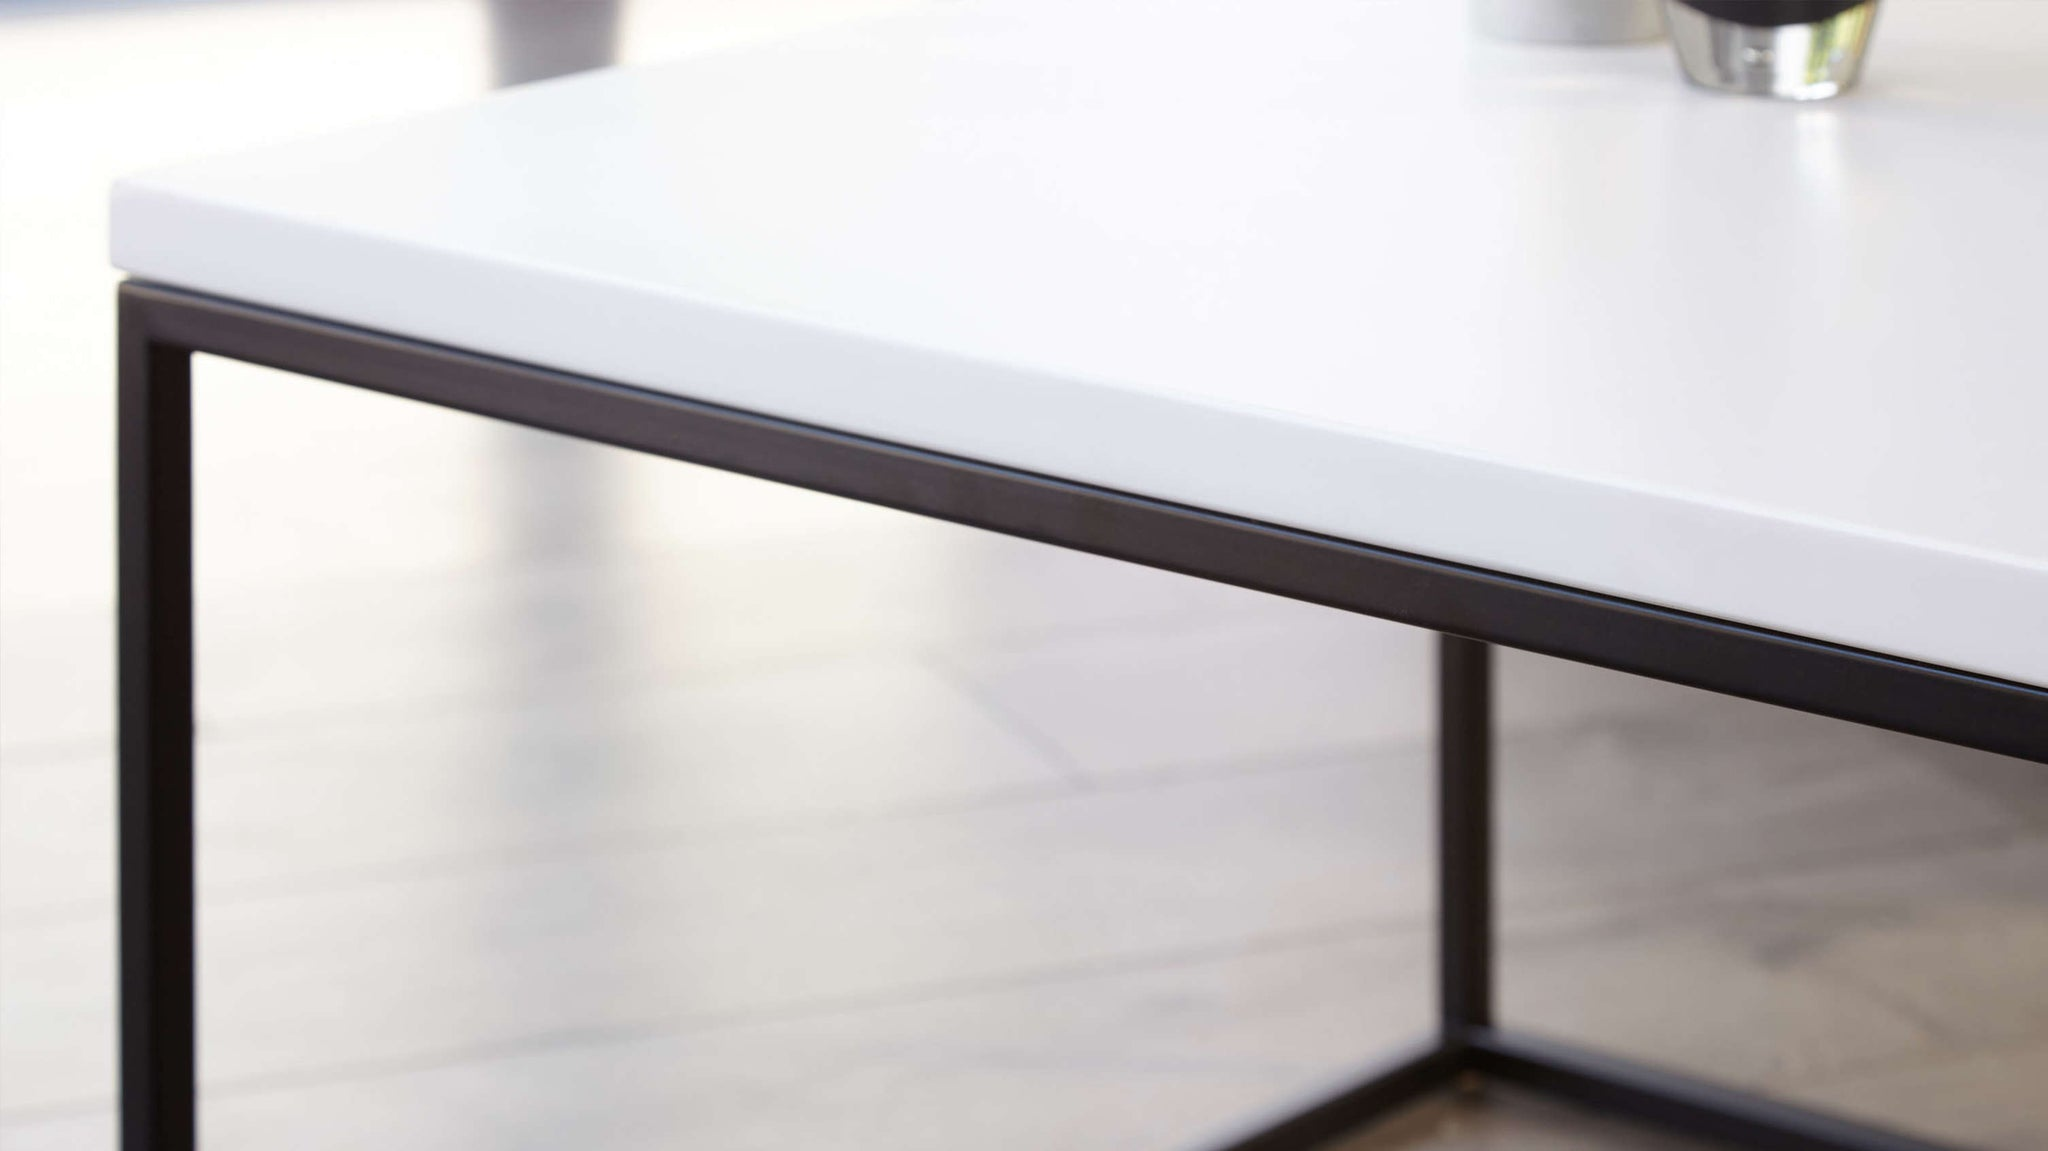 Matt white finish coffee table